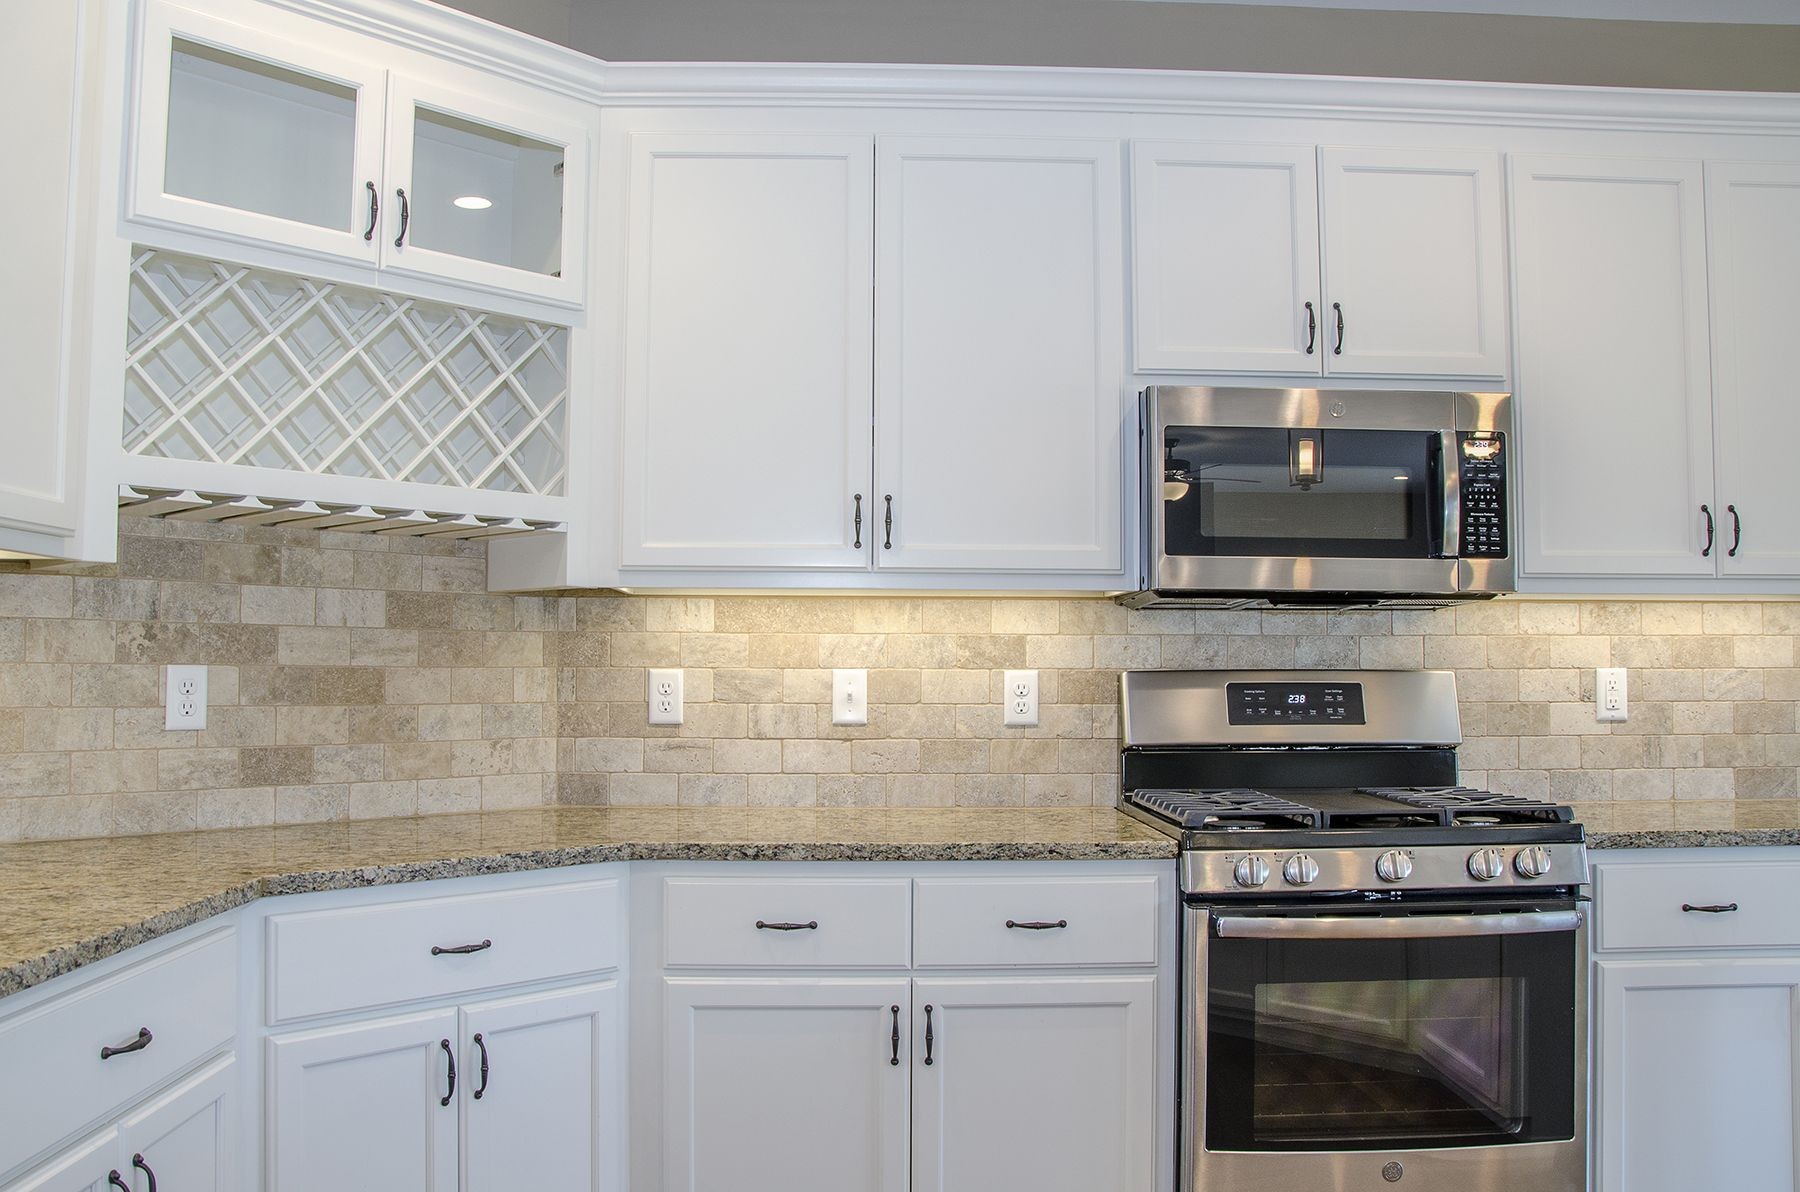 Love This Kitchen With White Cabinets And Beige Countertops And Backsplash We Love That Trendy Kitchen Backsplash Beige Kitchen Backsplash For White Cabinets